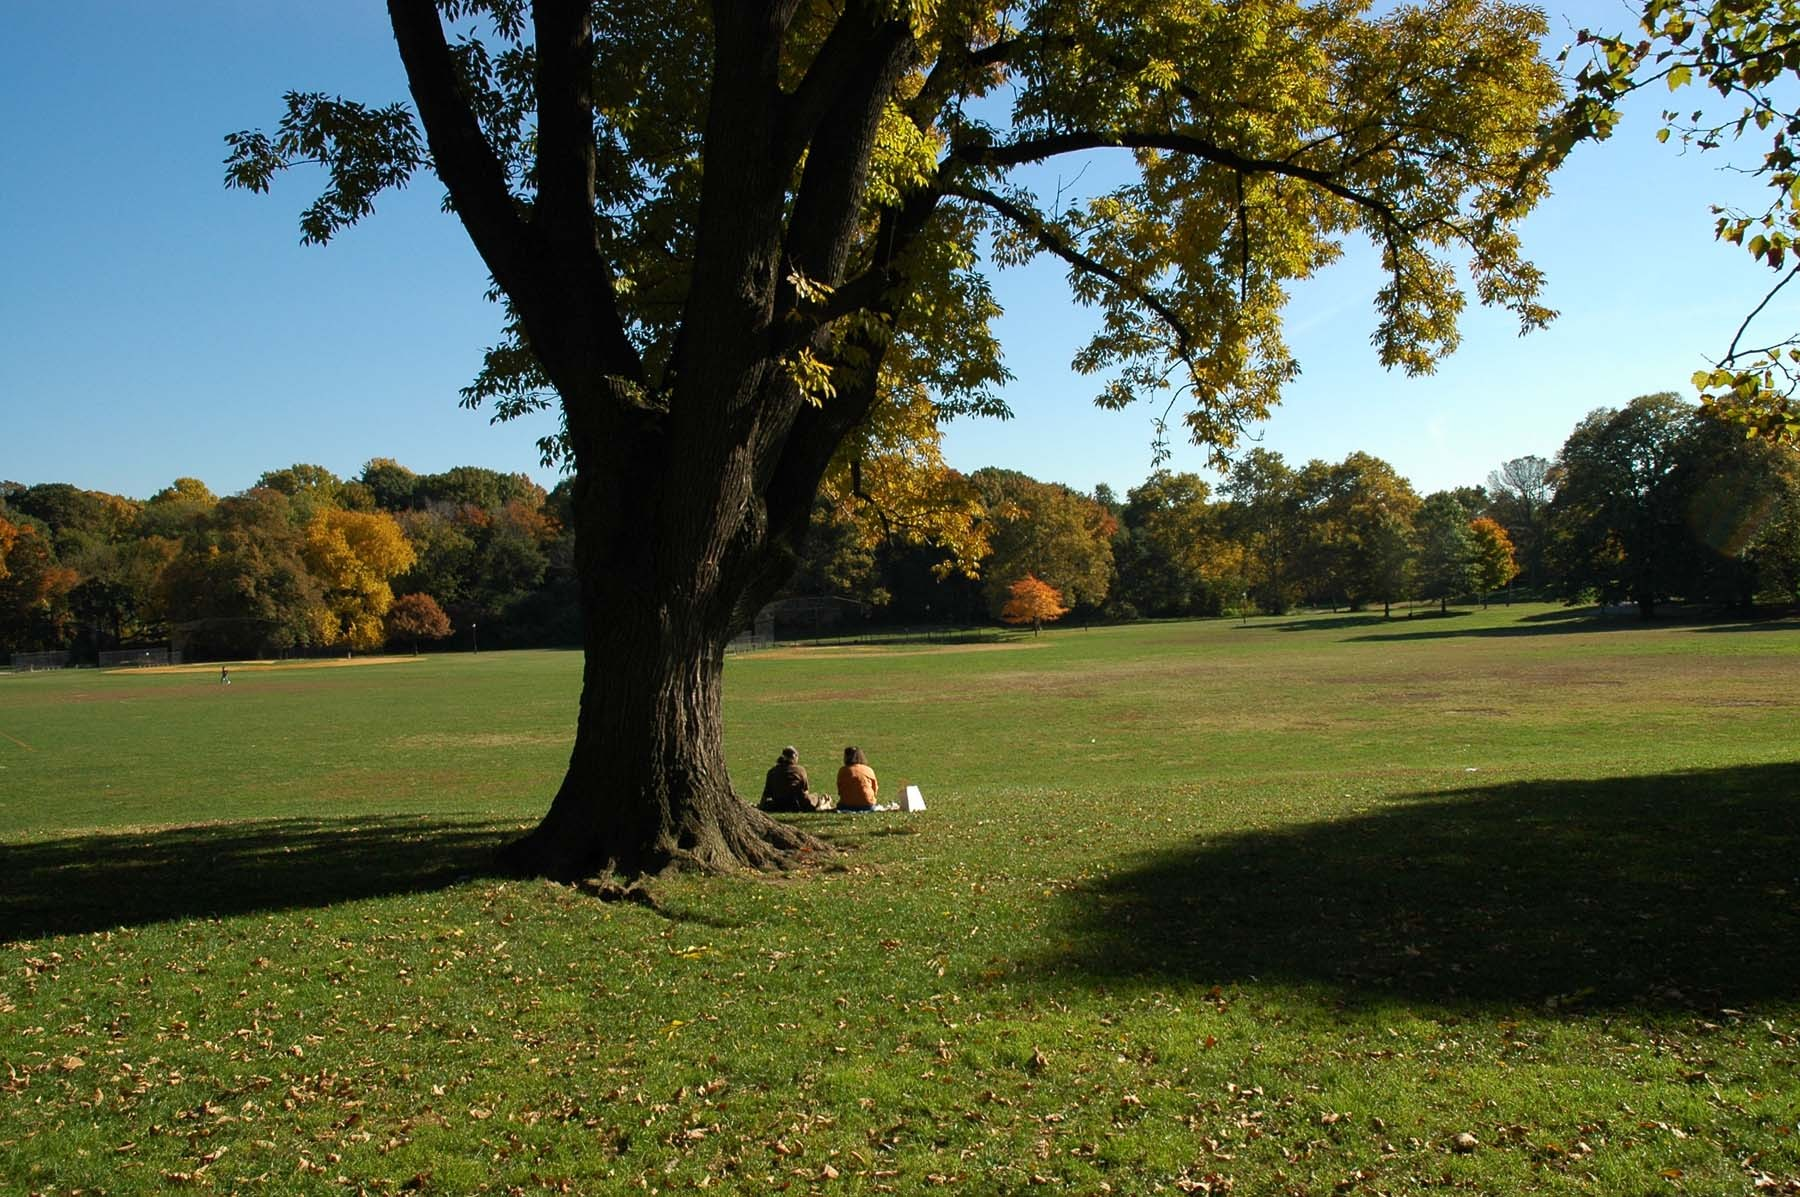 Wander through Prospect Park